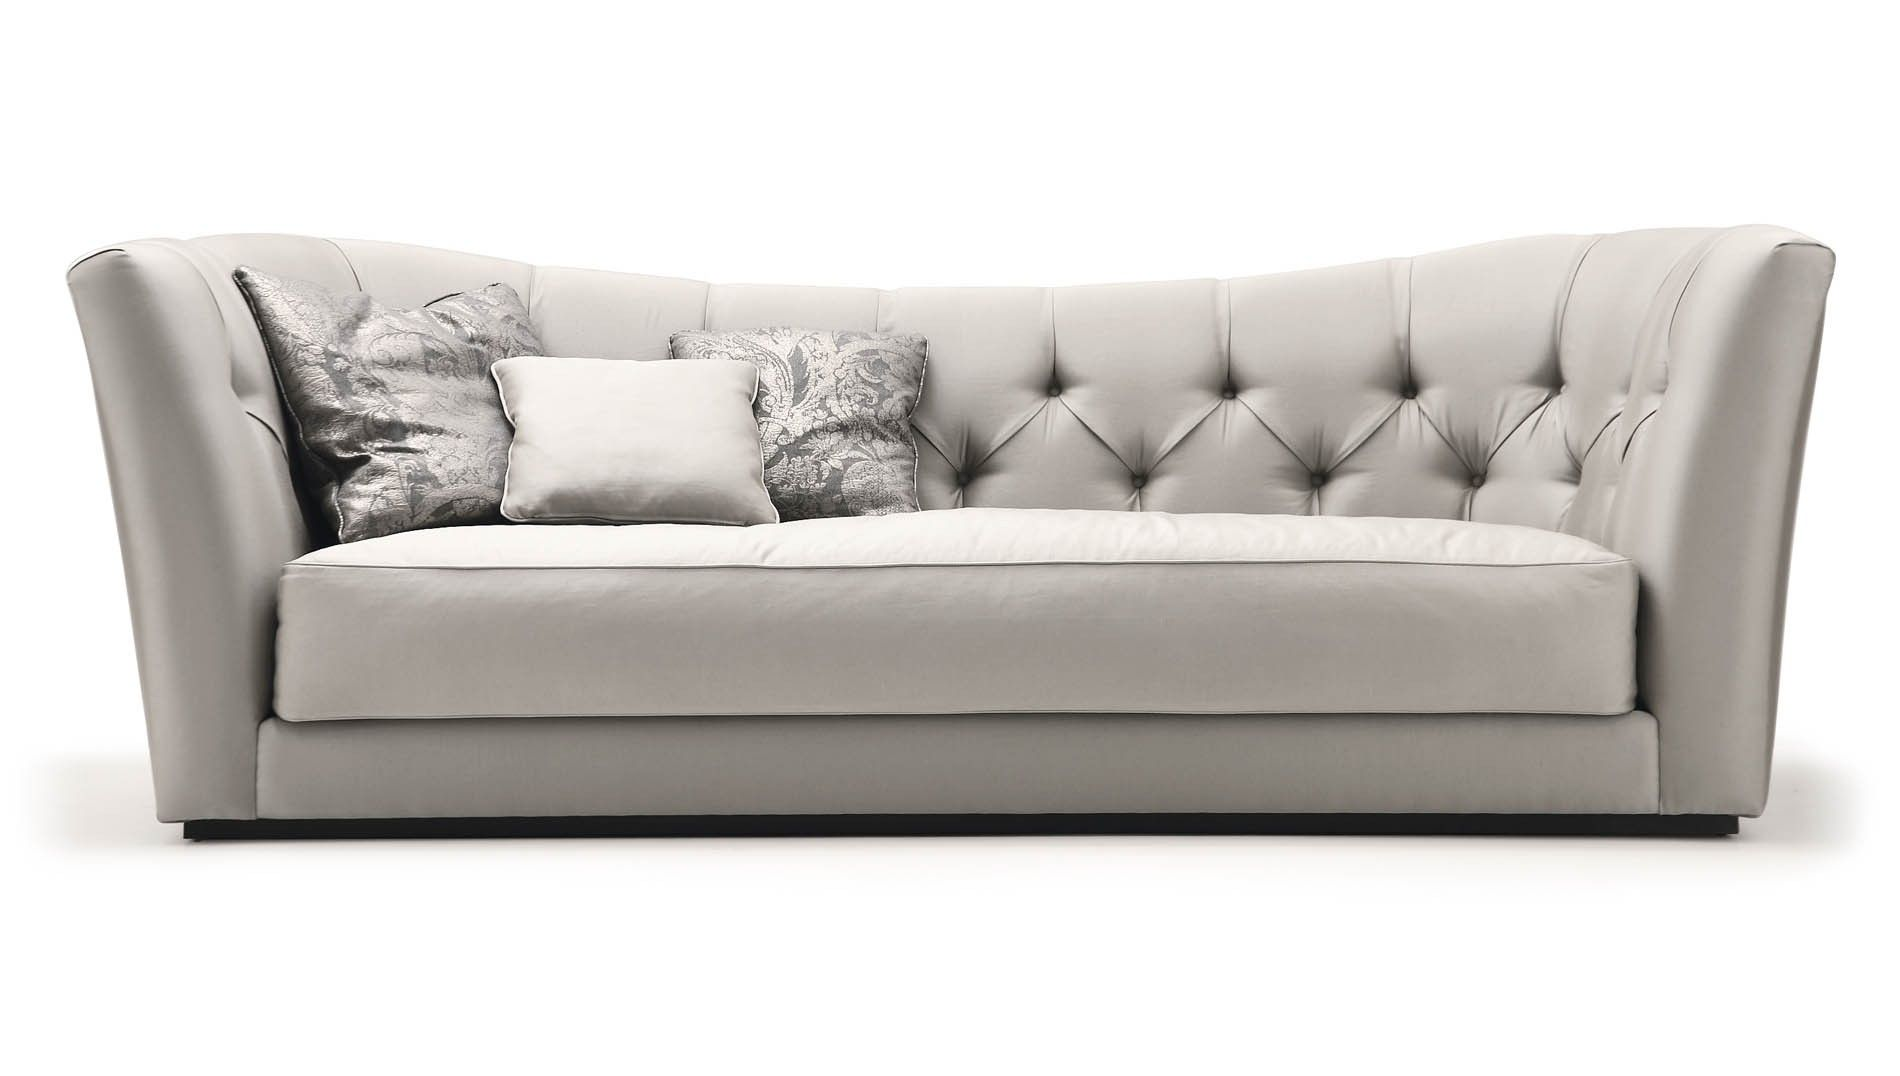 Buy Opera Contemporary Butterfly 3 Seater Sofa Online At Luxdeco